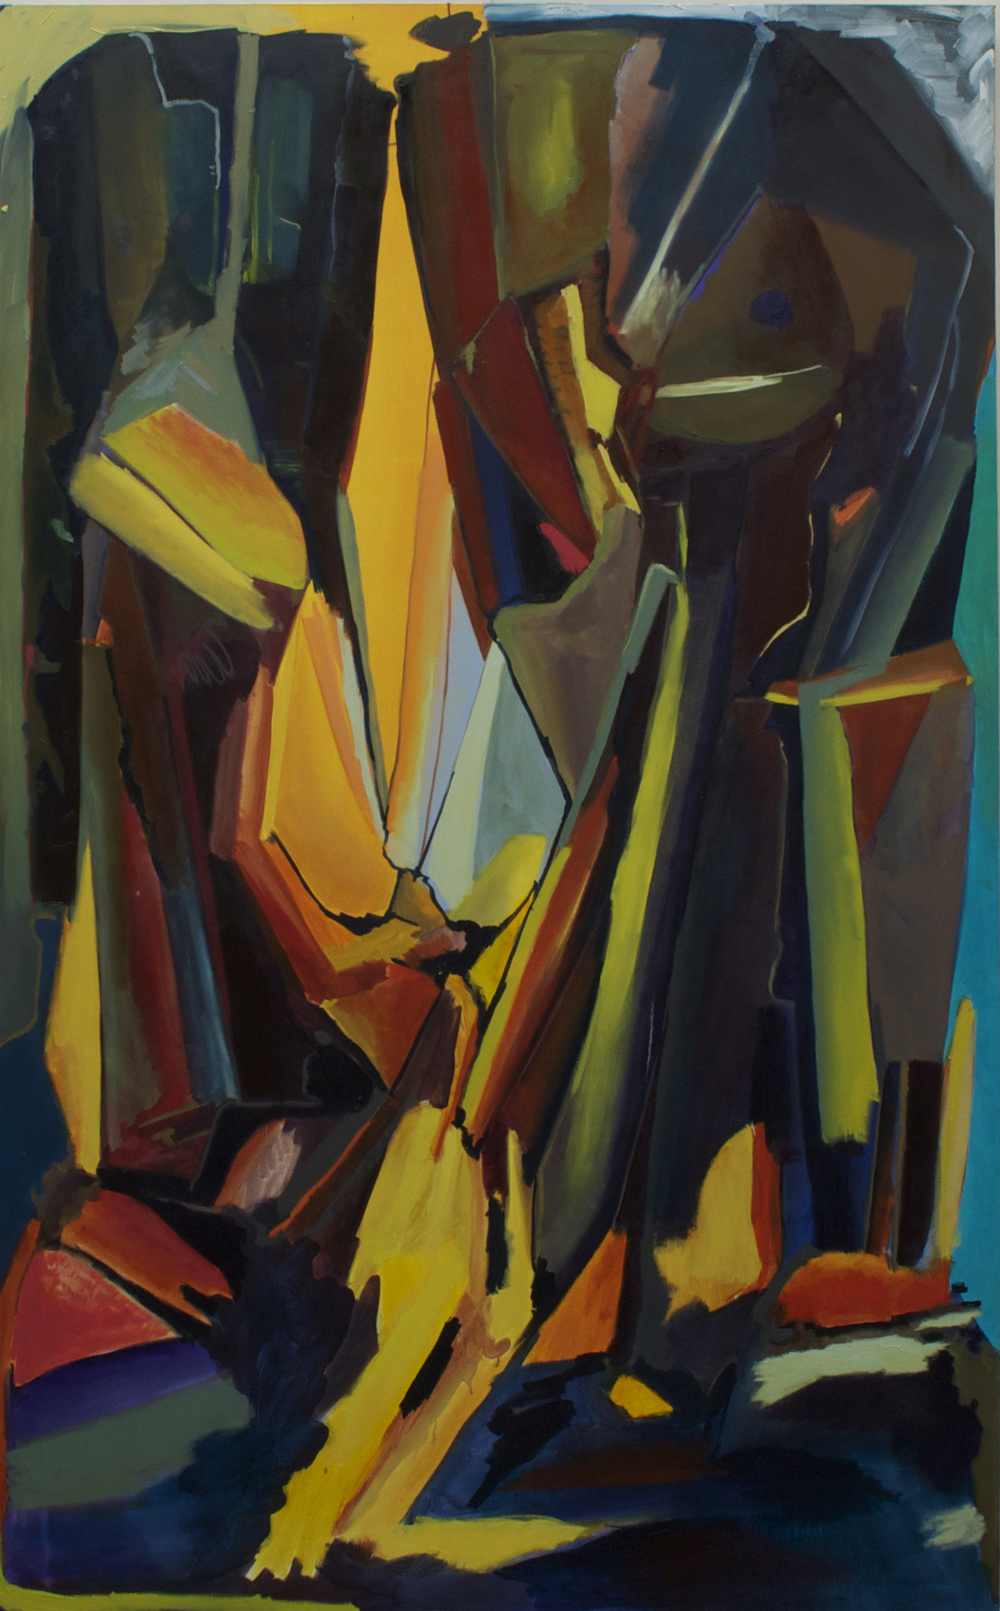 Jumbo Rocks(Blue), oil on canvas, 60x95 inches.